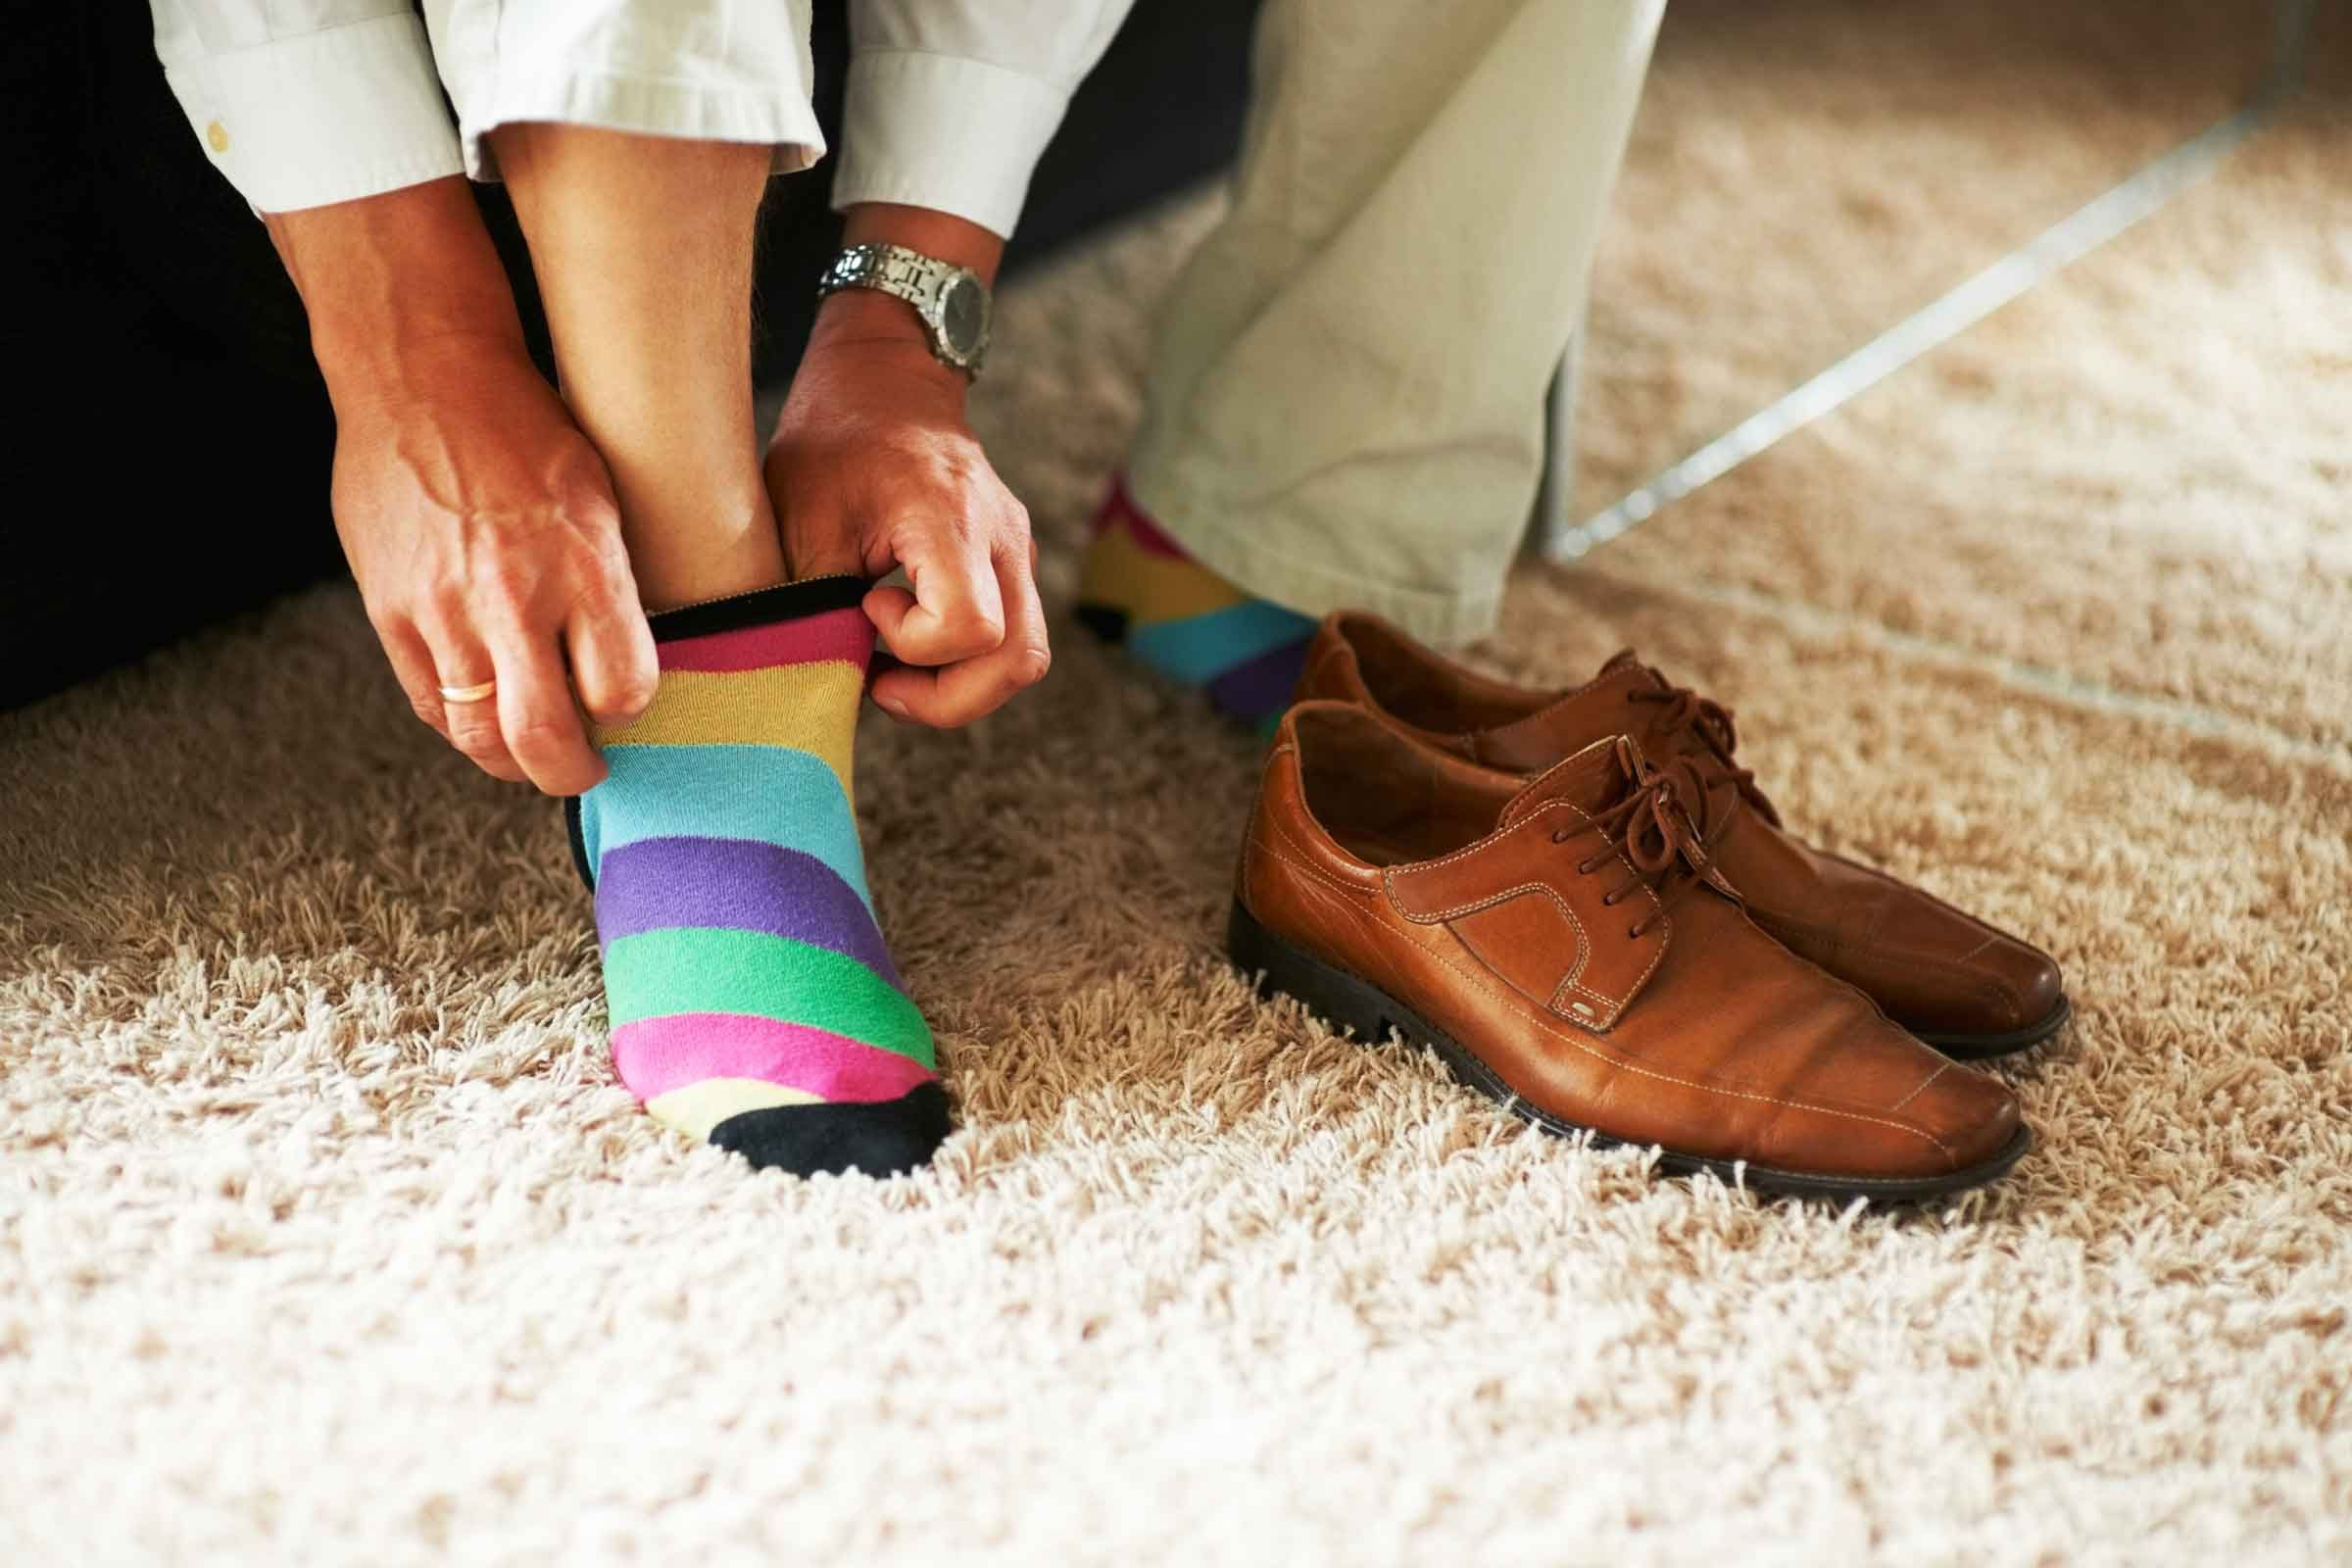 Take Shoes Off In House why to take off your shoes in your house | reader's digest